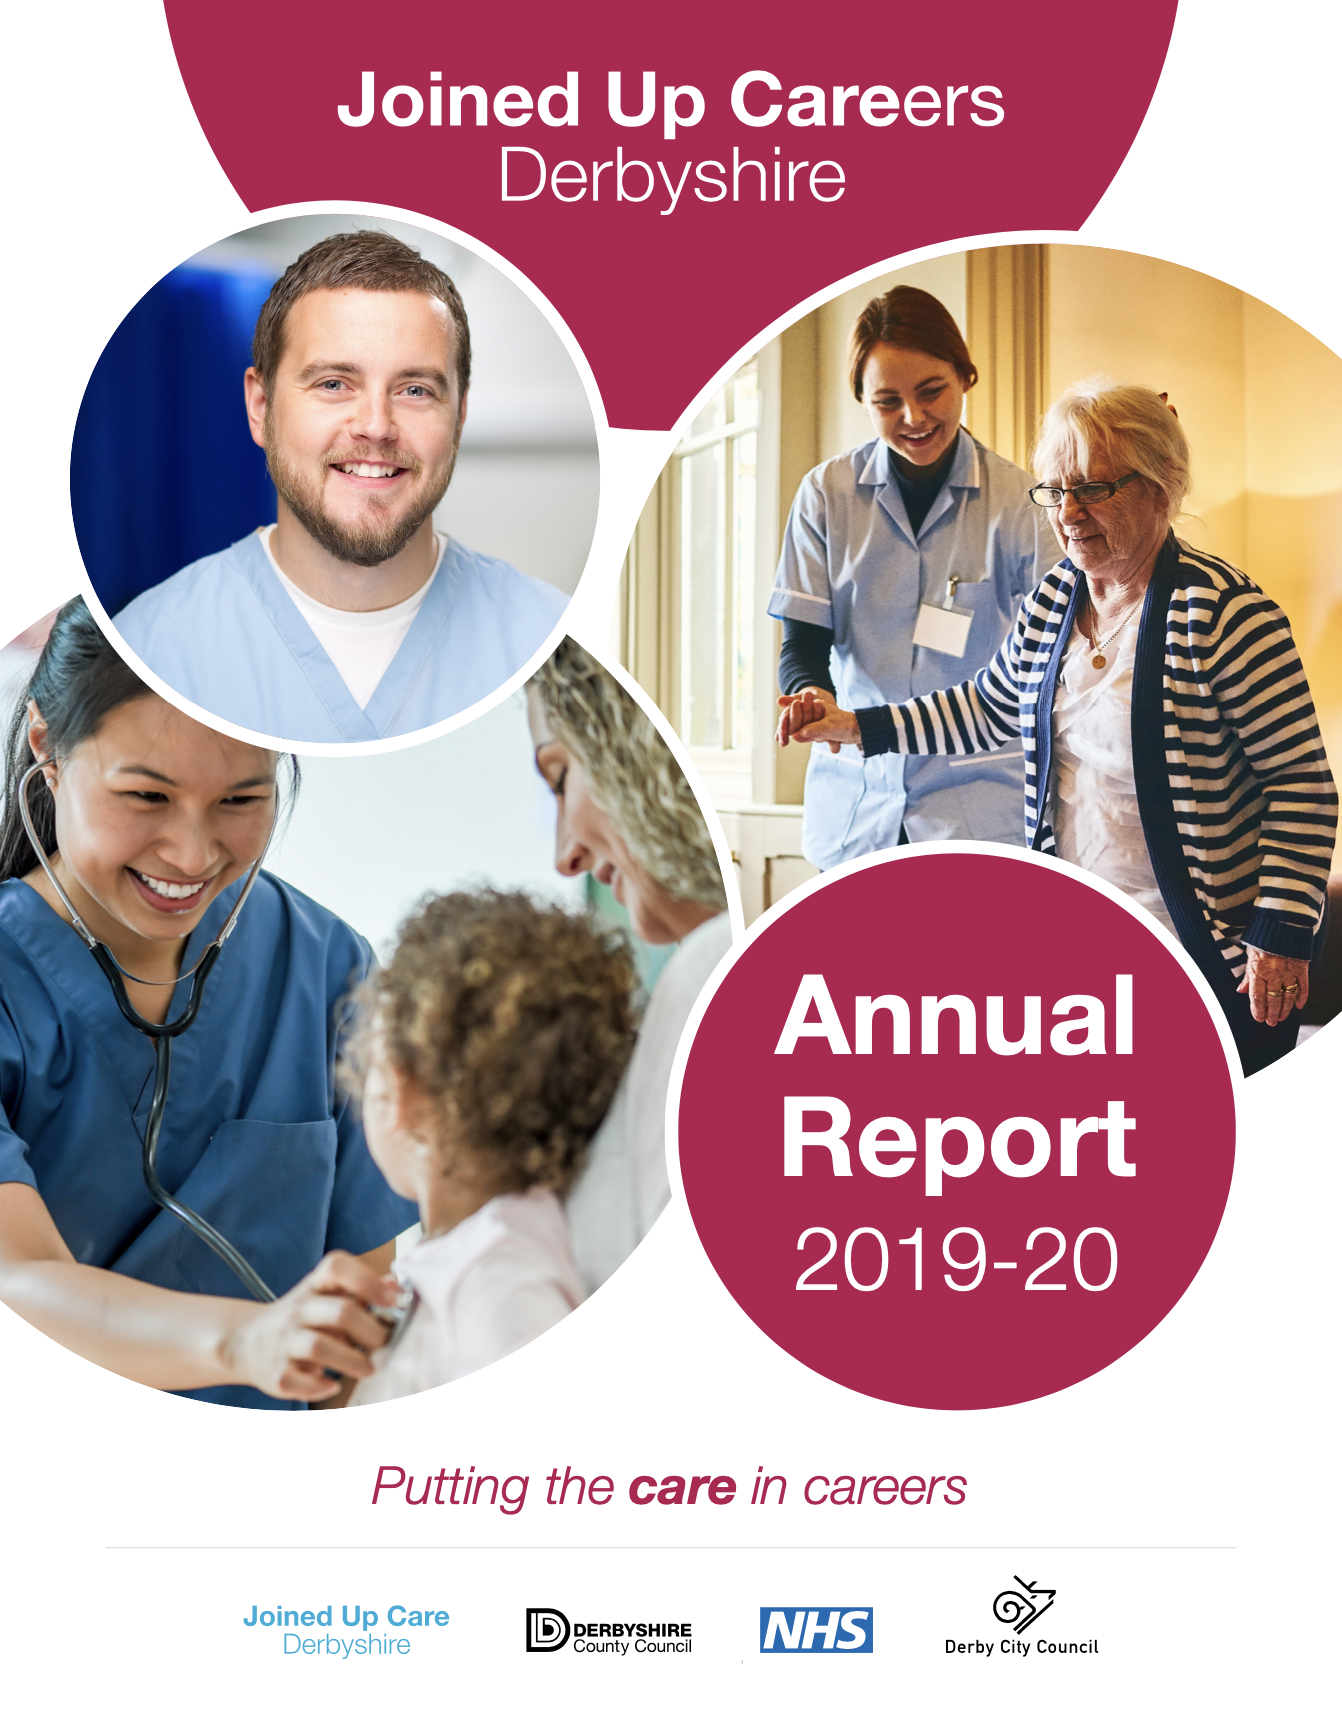 Joined Up Careers Derbyshire launches first annual report